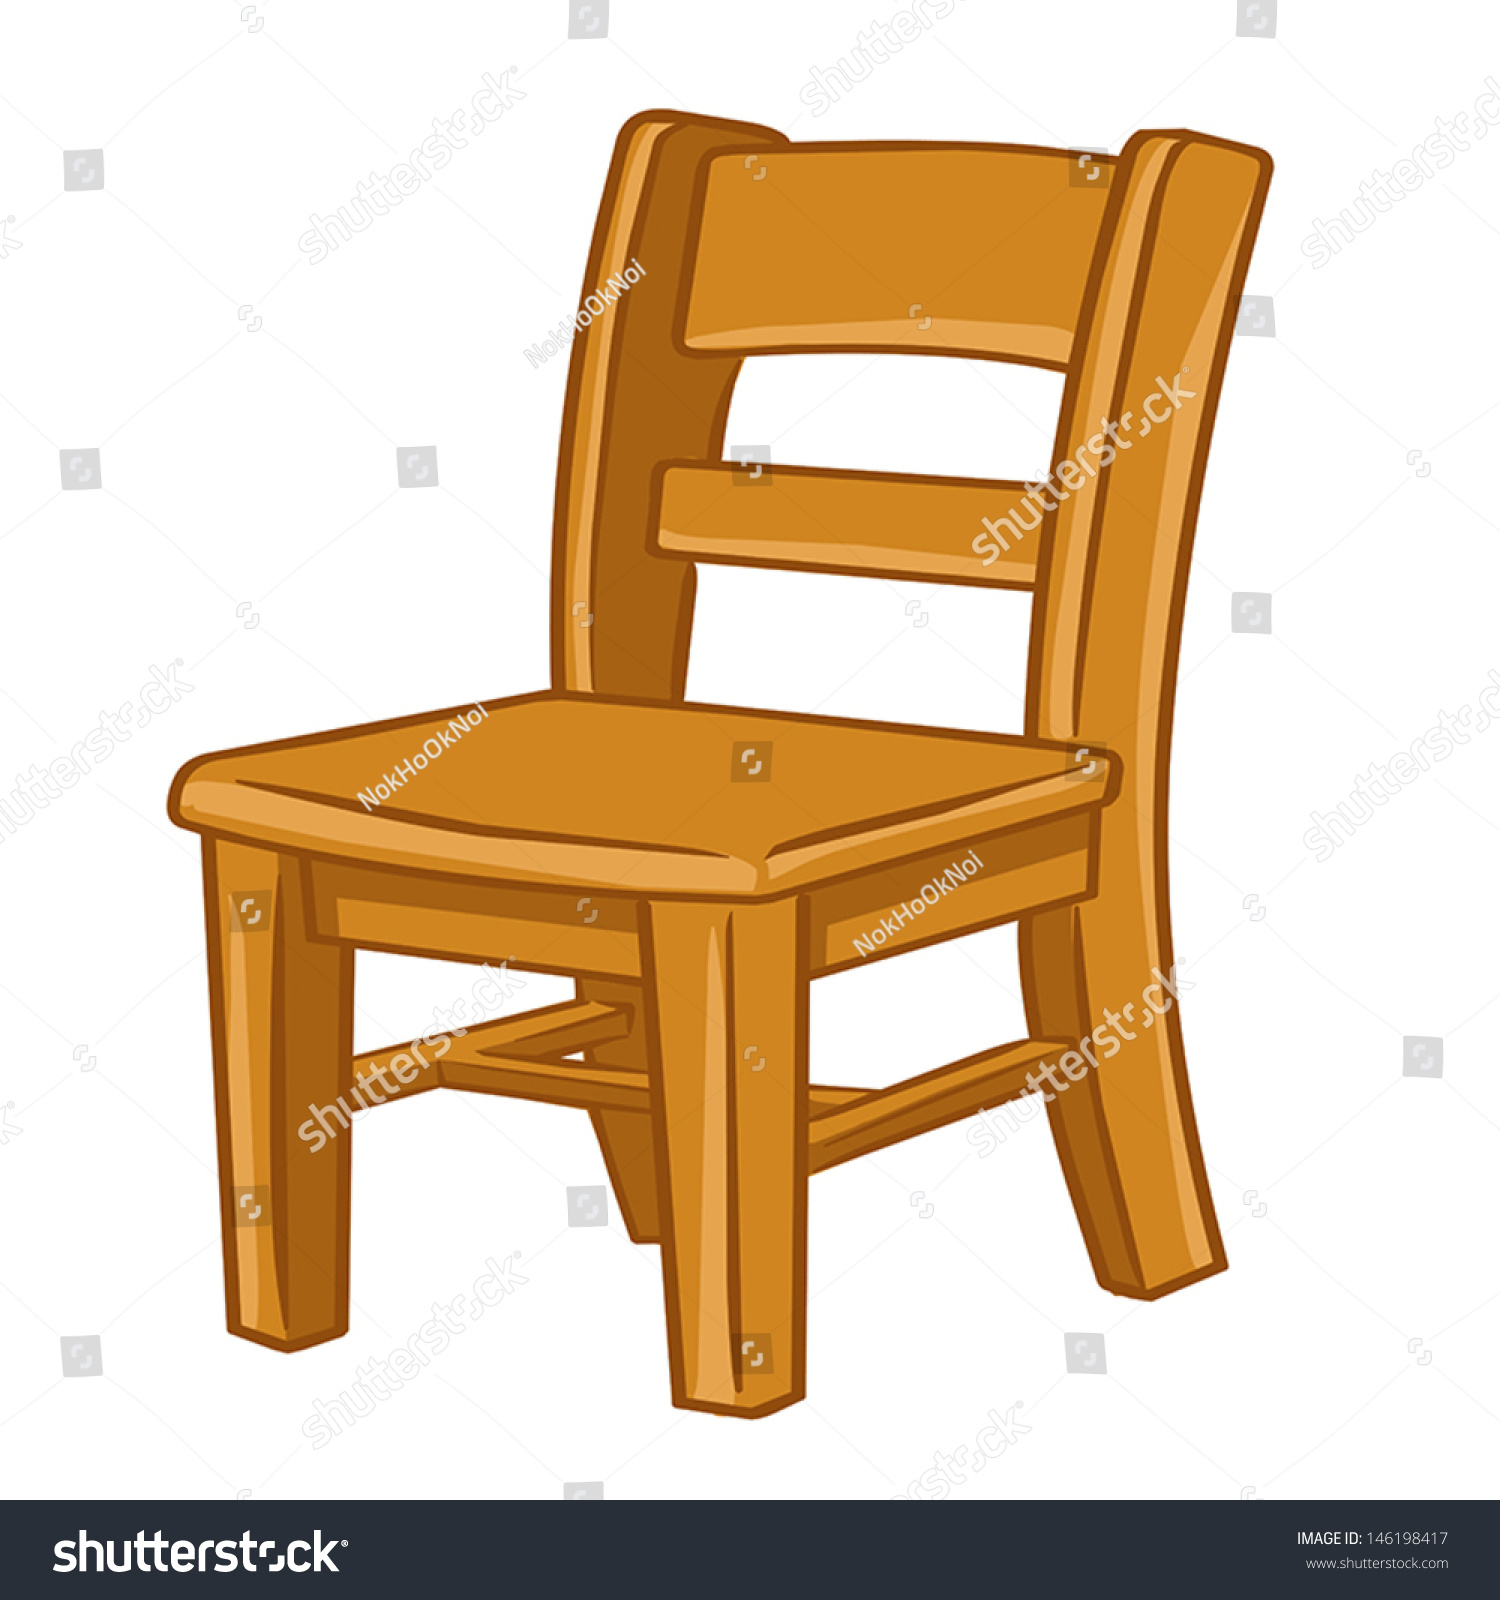 wood chair isolated illustration on white stock vector 146198417 shutterstock. Black Bedroom Furniture Sets. Home Design Ideas